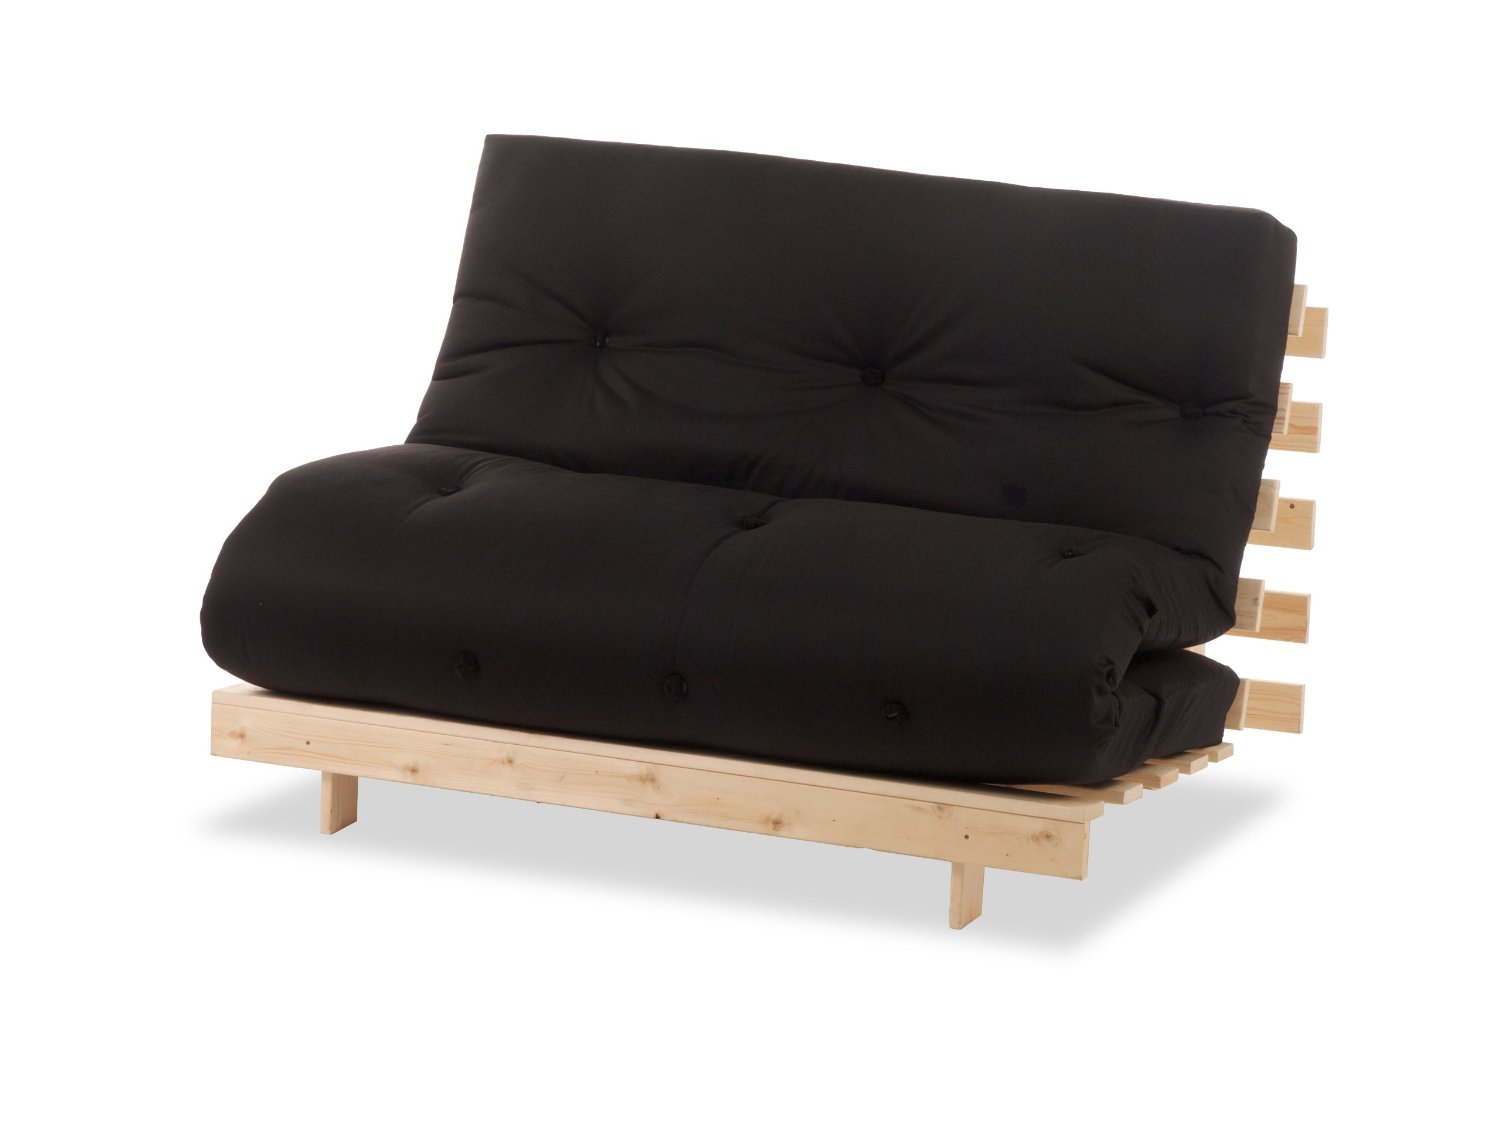 Metro Two Seater Wooden Futon Sofa Bed